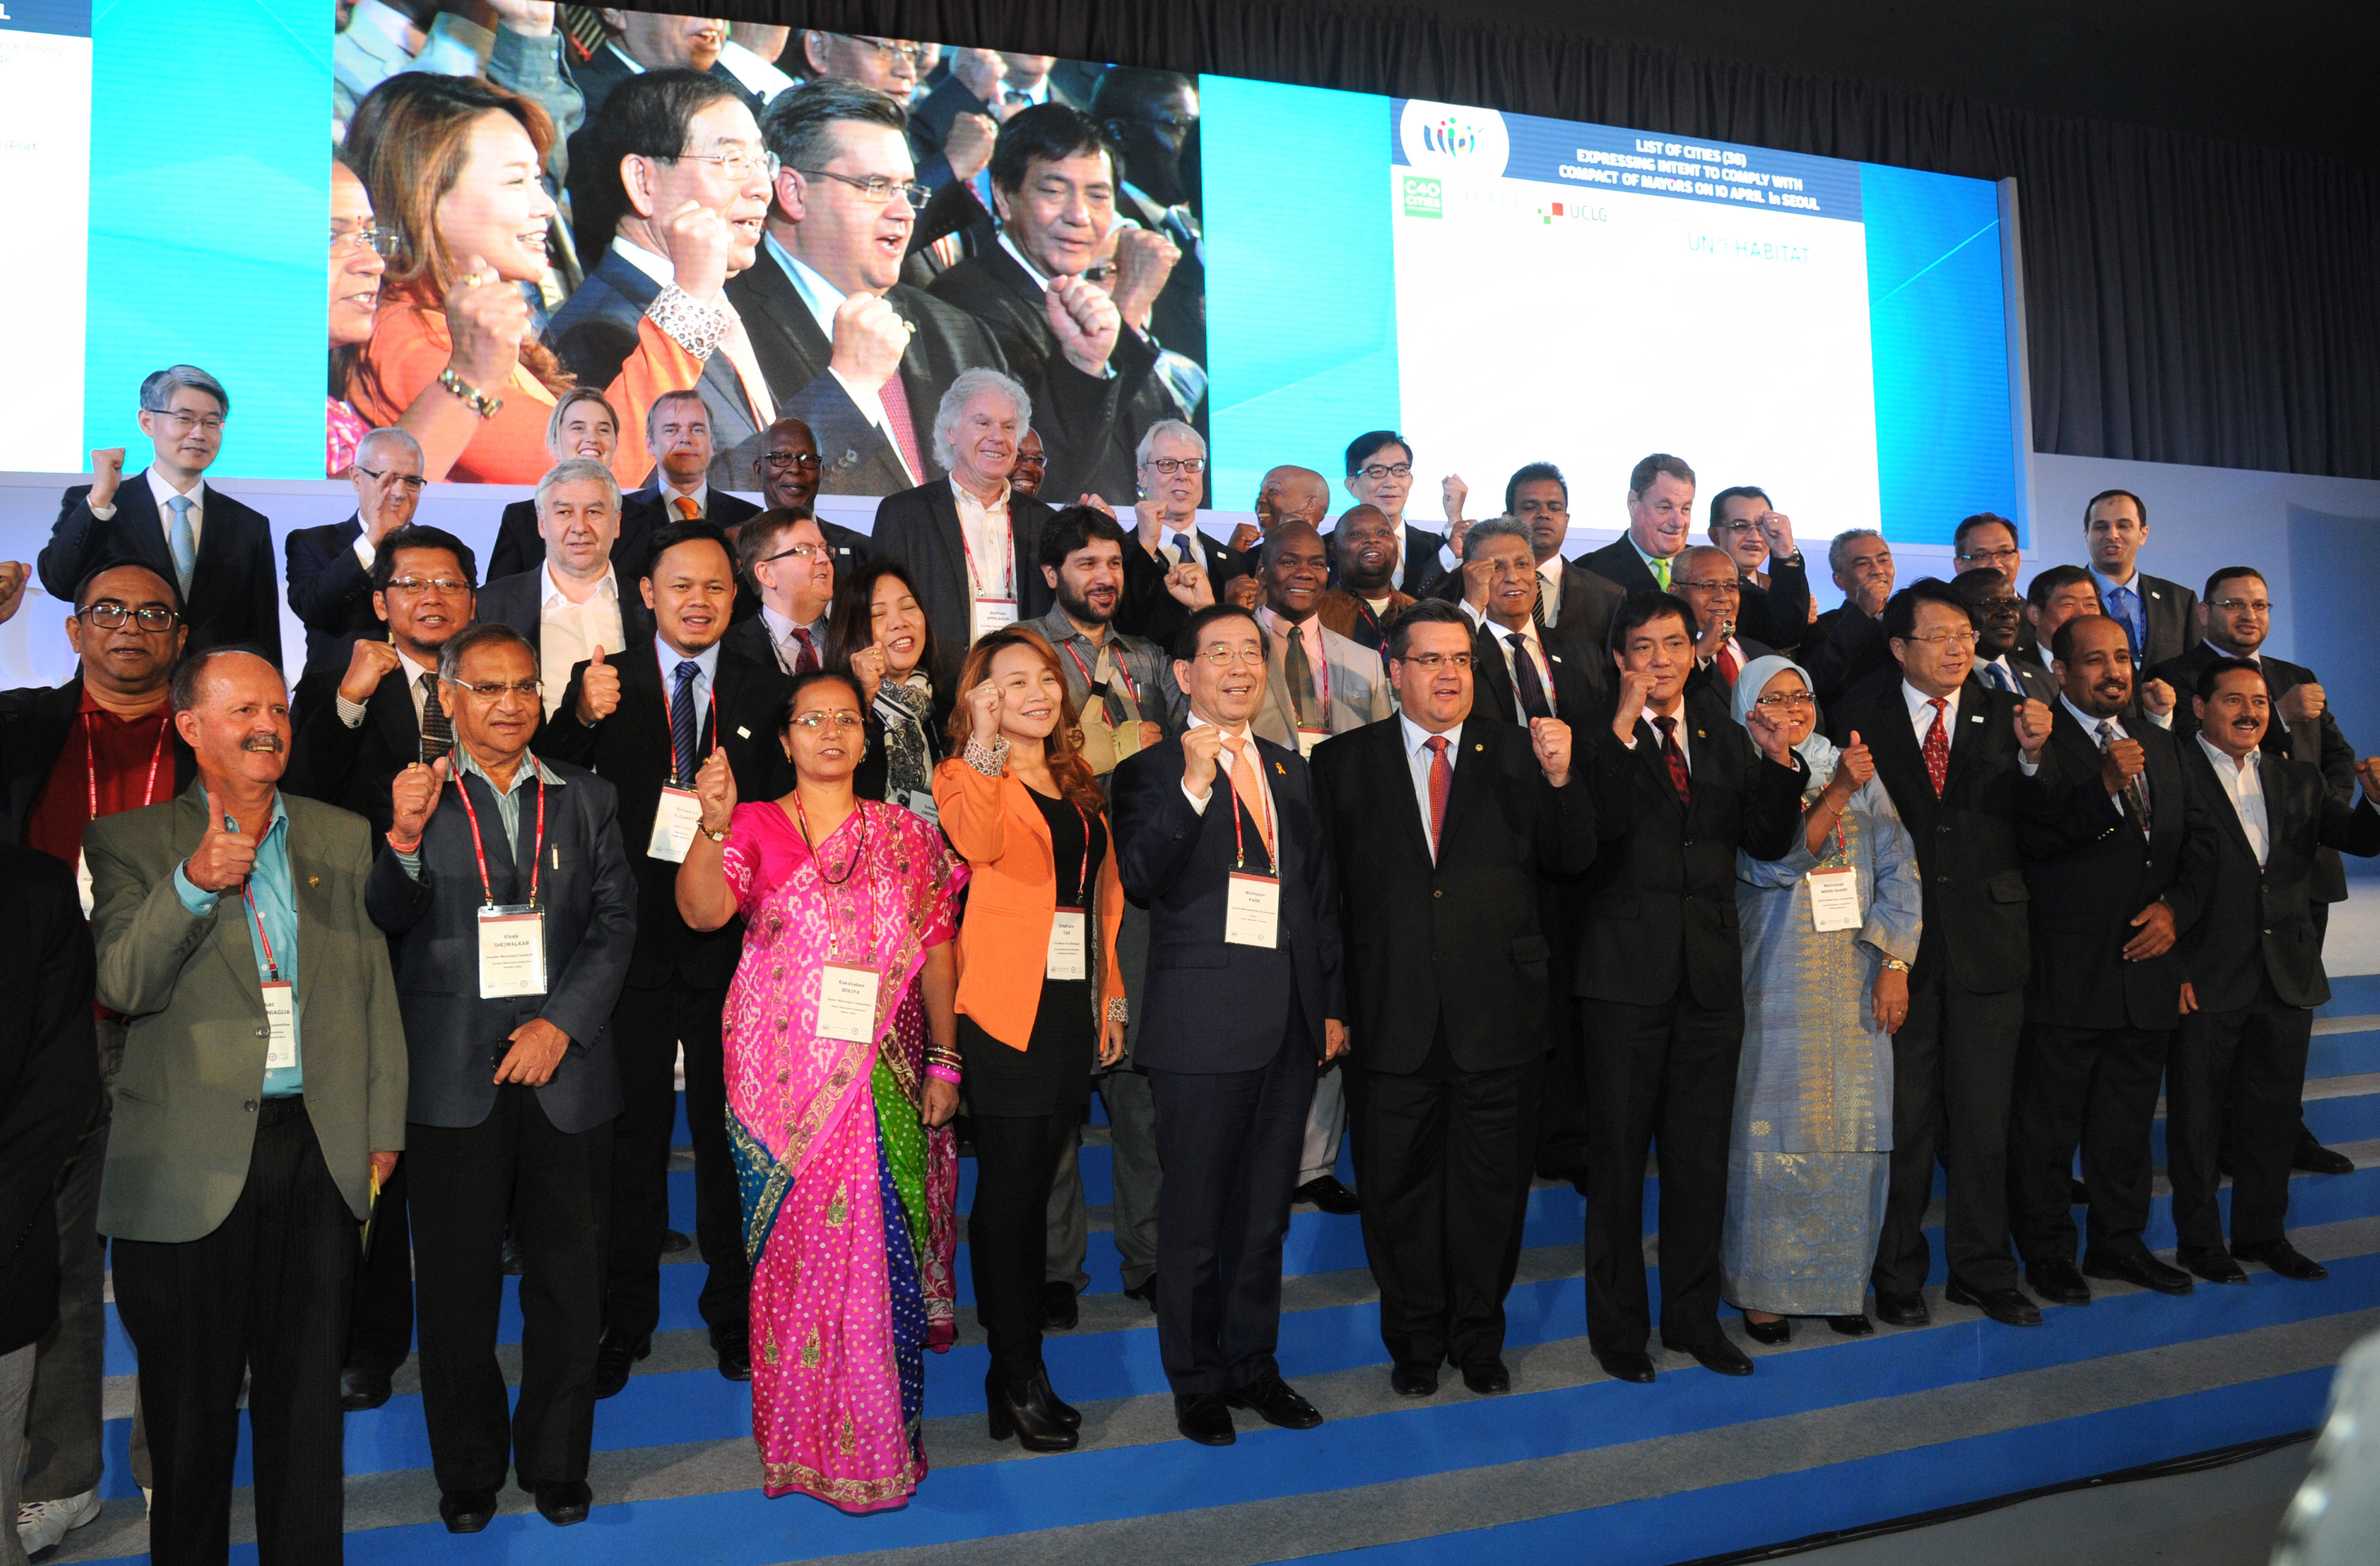 2015 ICLEI World Congress